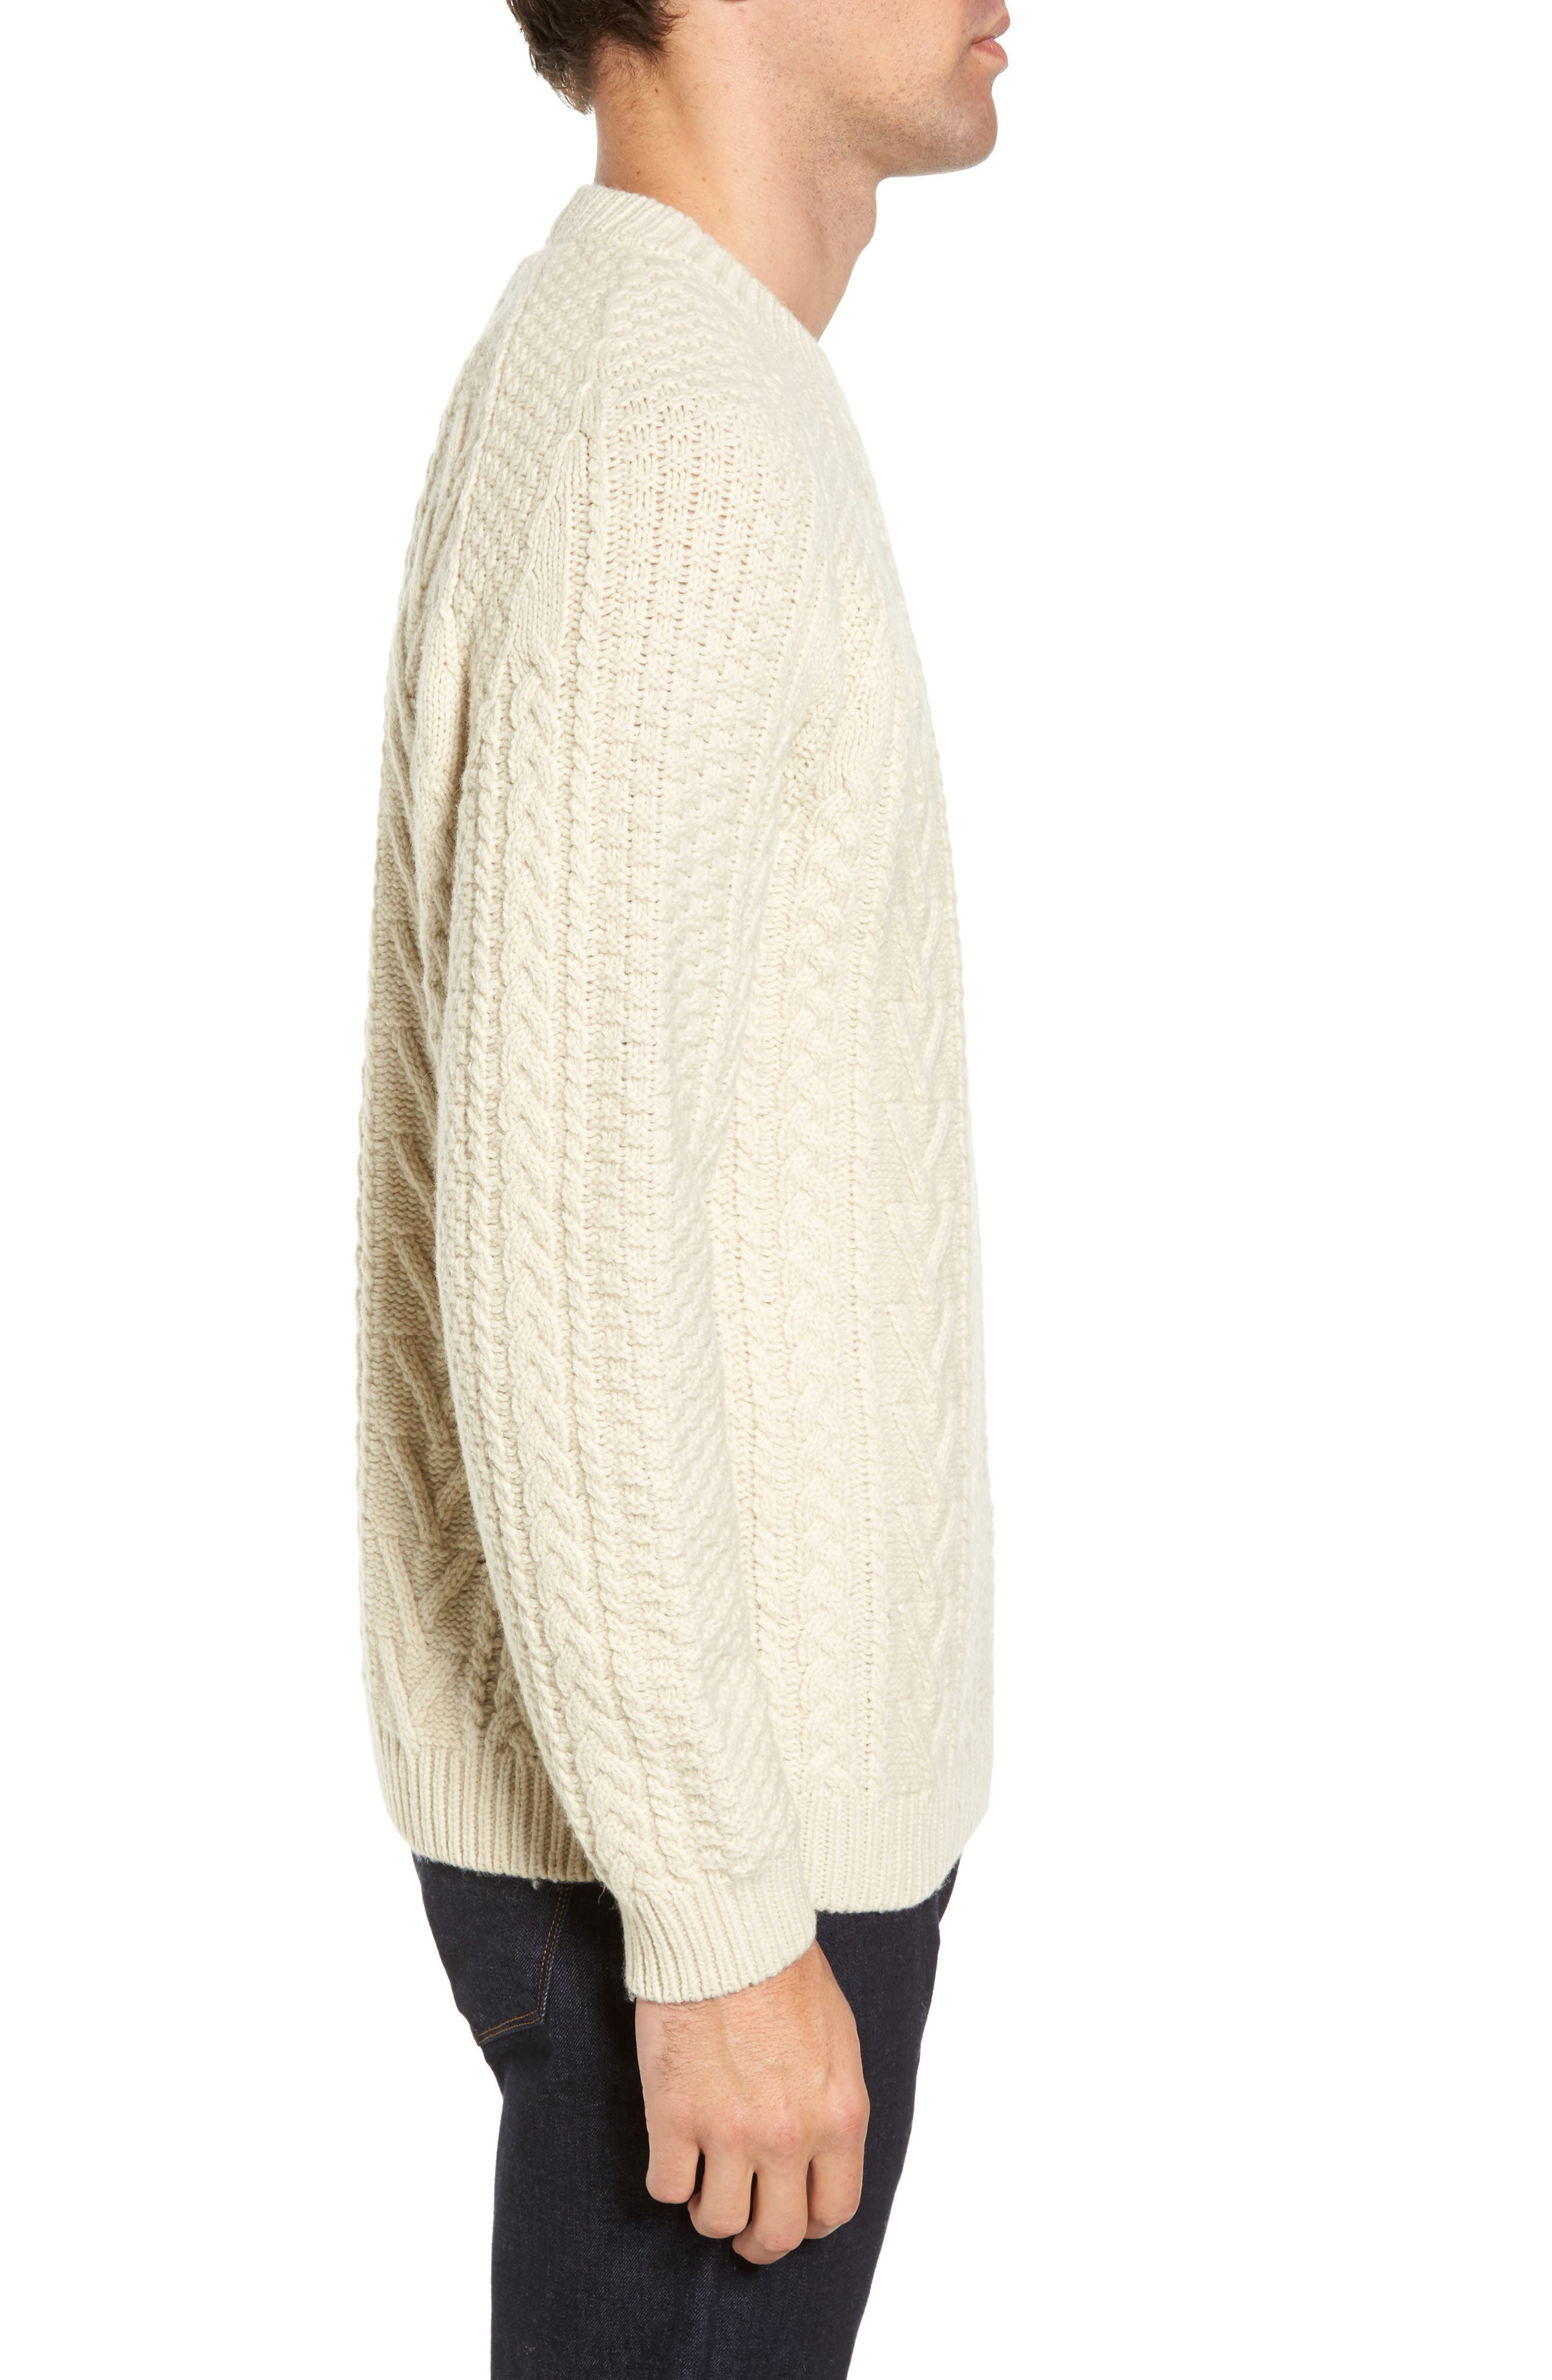 Fisherman Knit Wool Blend Sweater,                             Alternate thumbnail 3, color,                             OFF WHITE